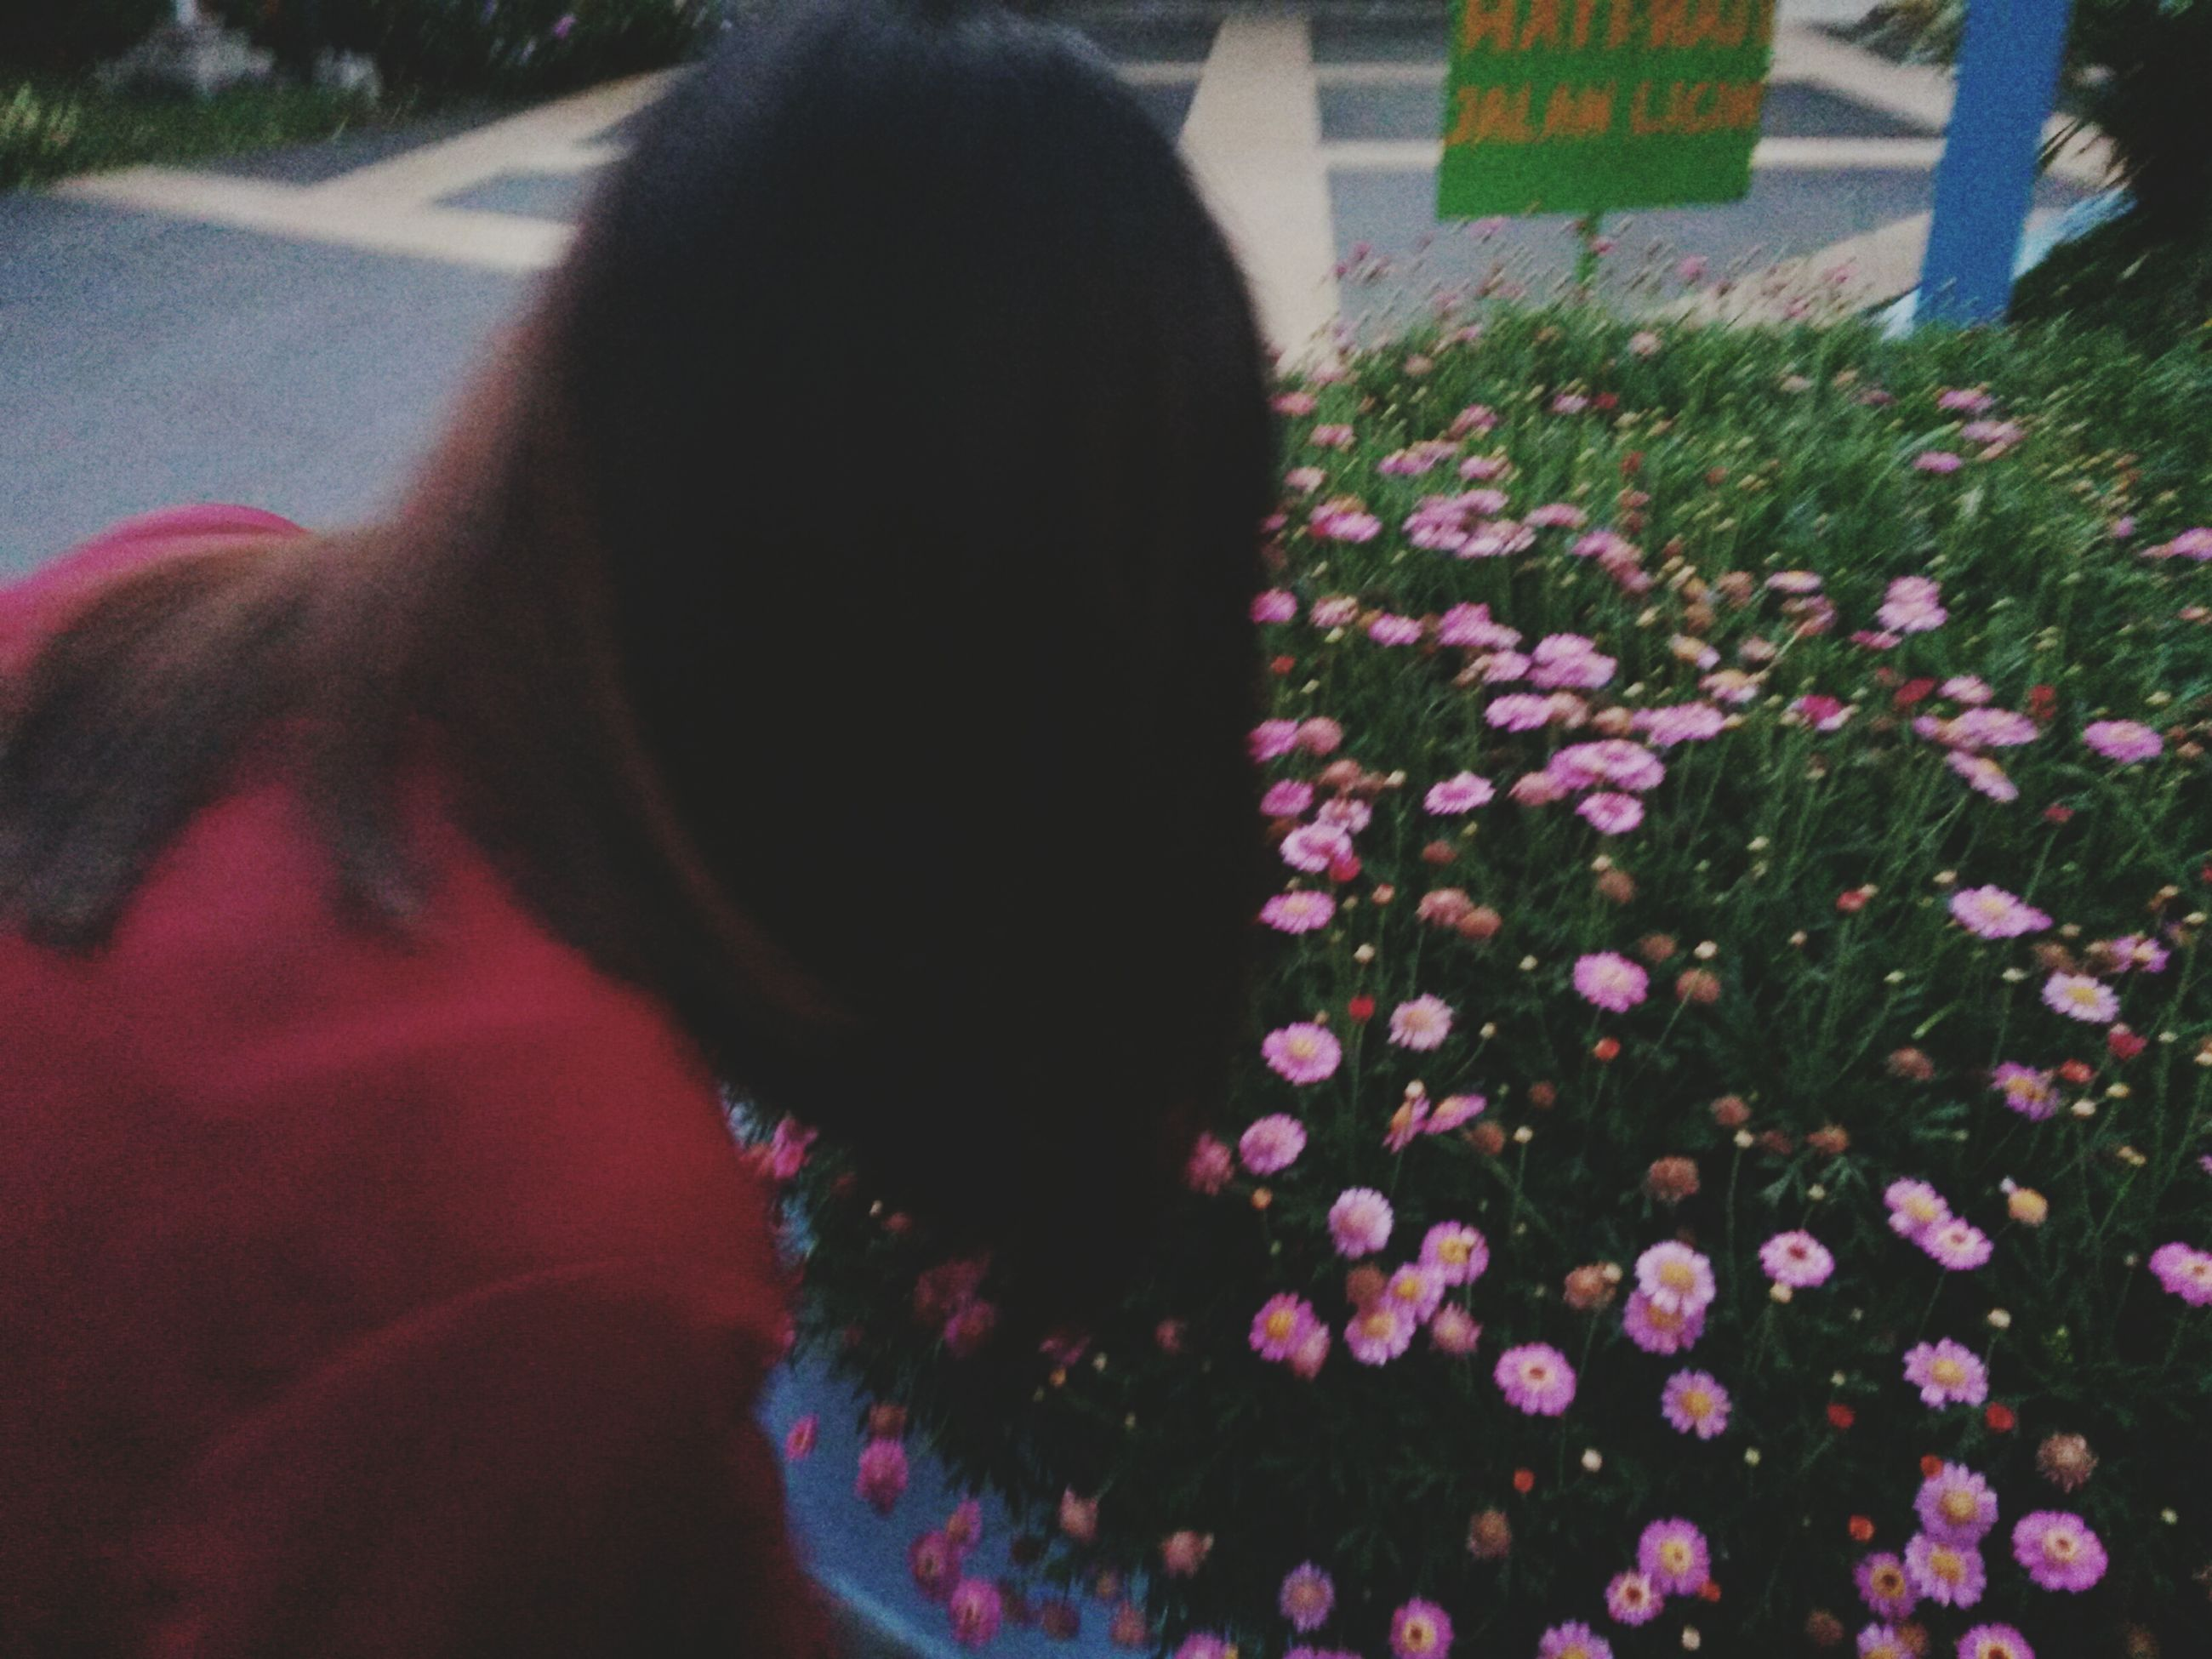 flower, fragility, petal, pink color, rear view, lifestyles, flower head, plant, growth, freshness, focus on foreground, close-up, day, blooming, nature, indoors, park - man made space, person